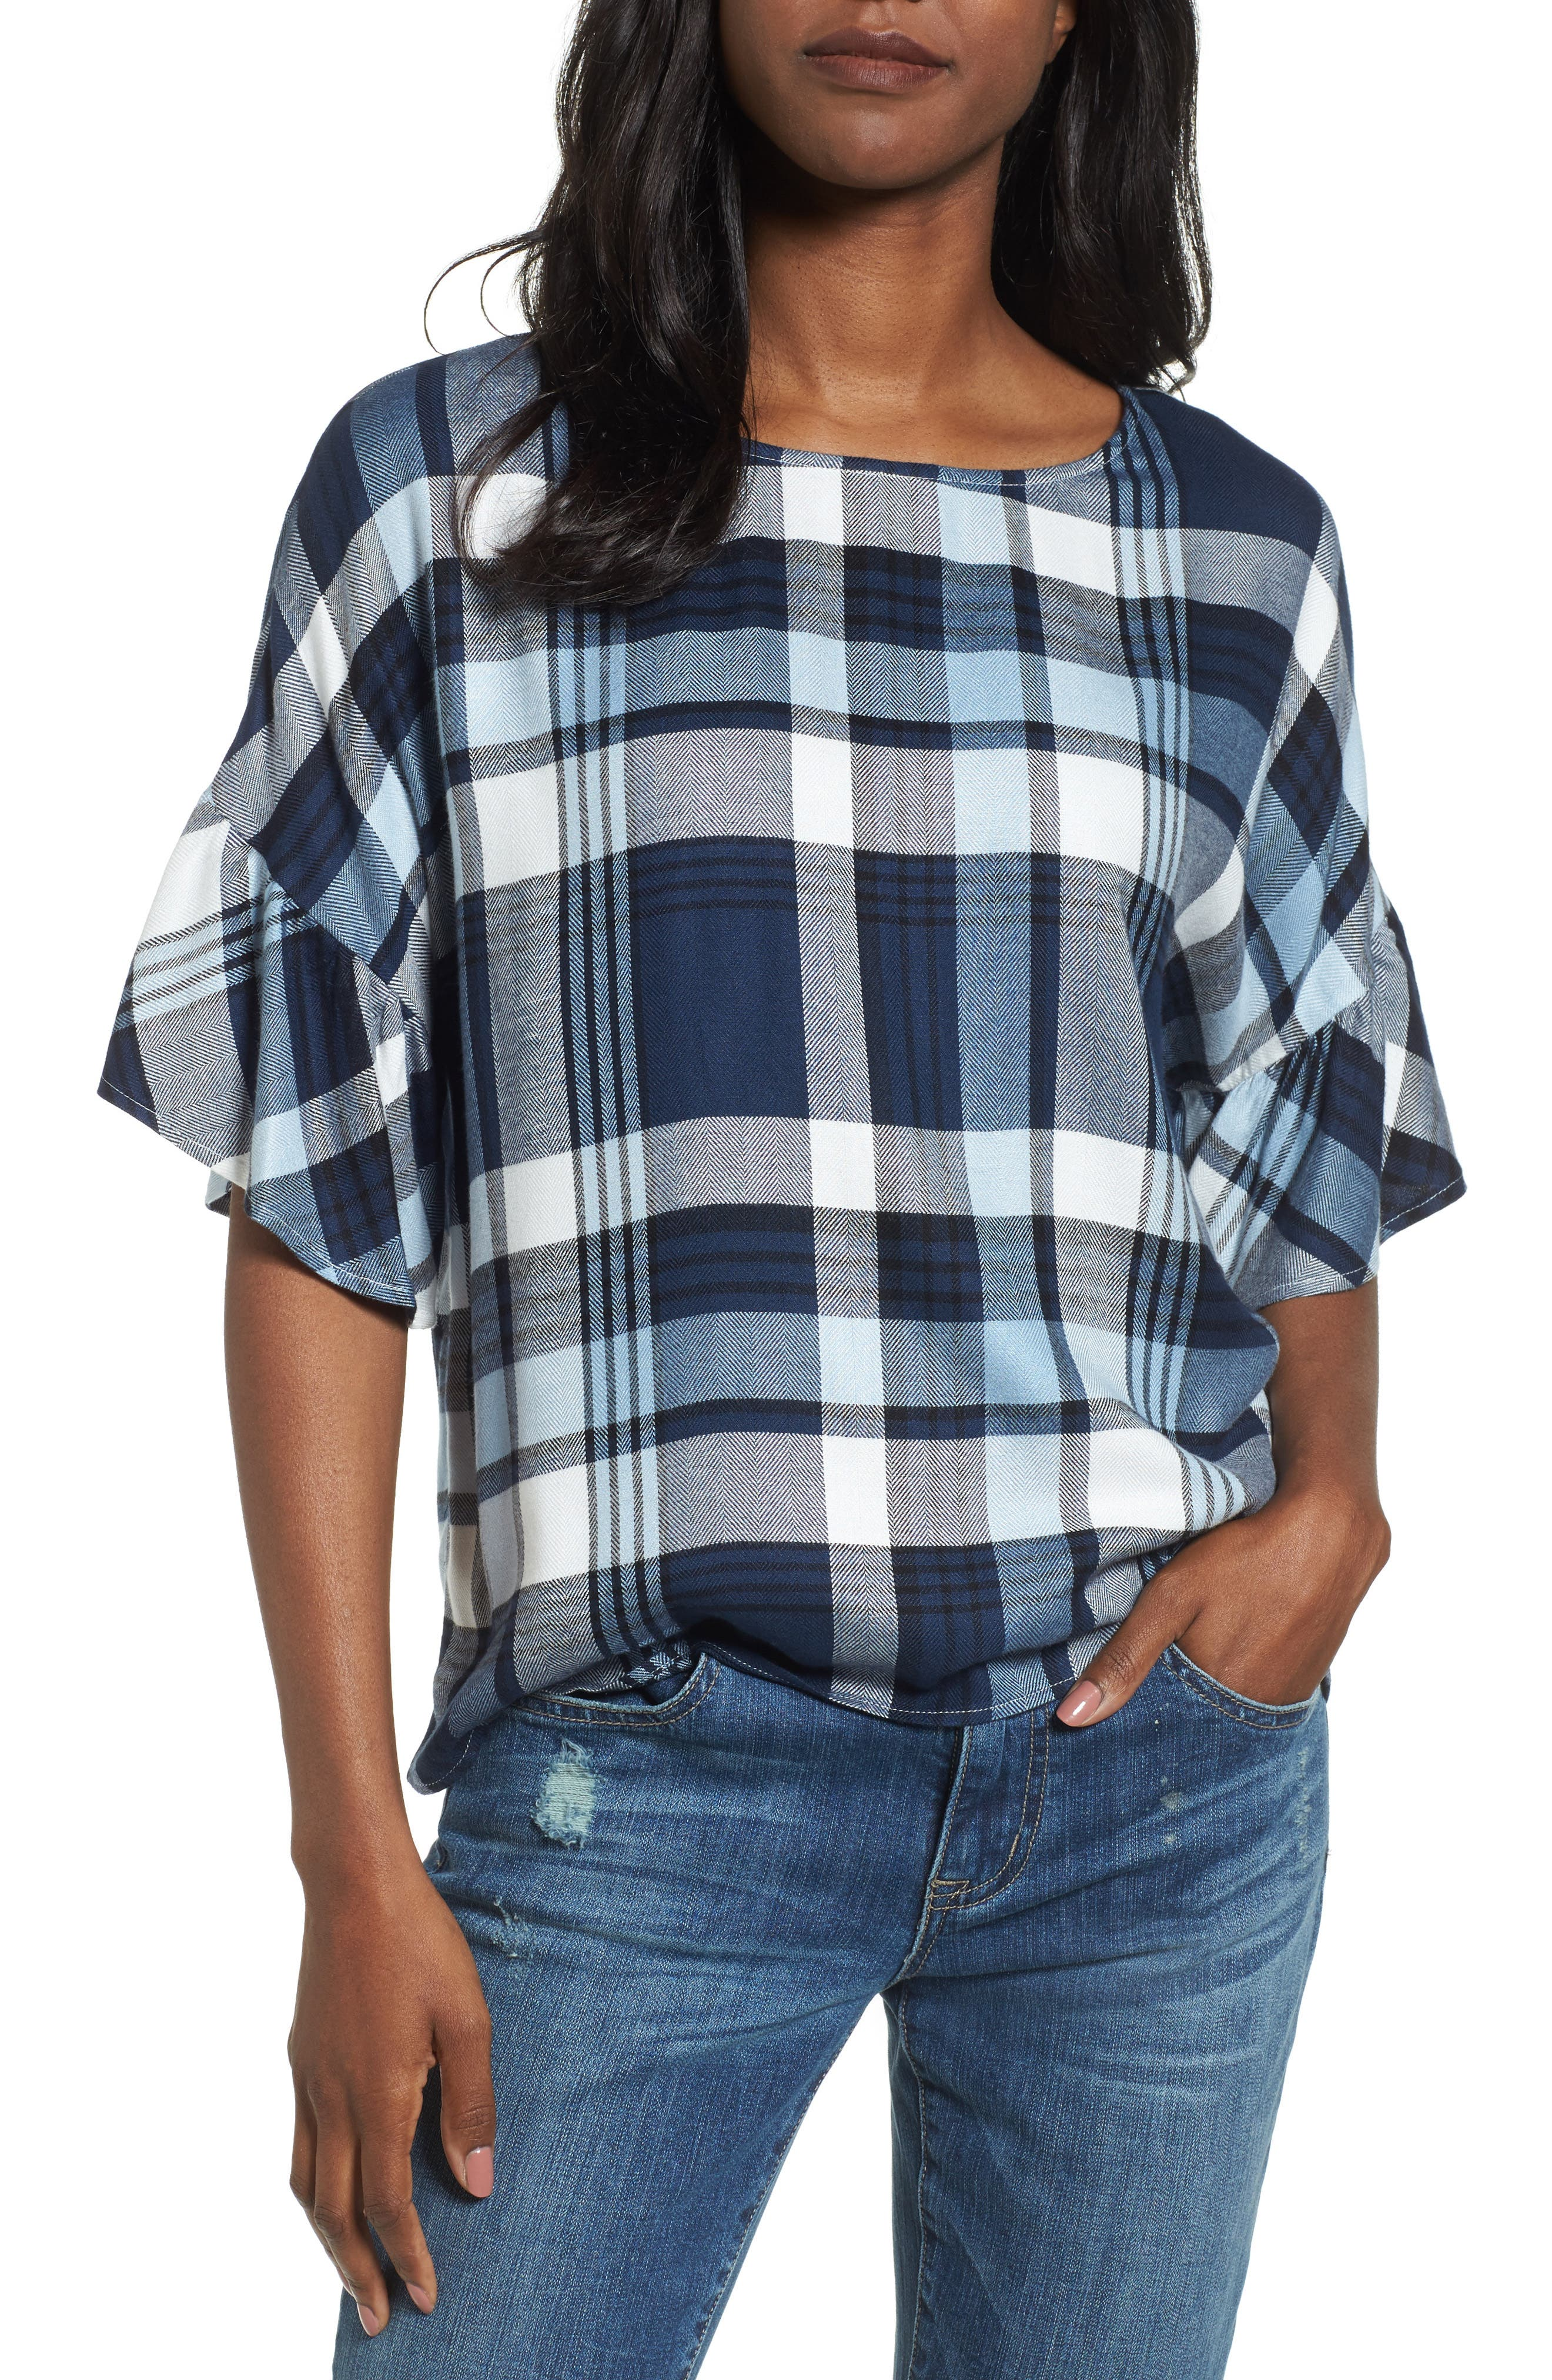 Alternate Image 1 Selected - Two by Vince Camuto Ruffle Sleeve Plaid Top (Regular & Petite)